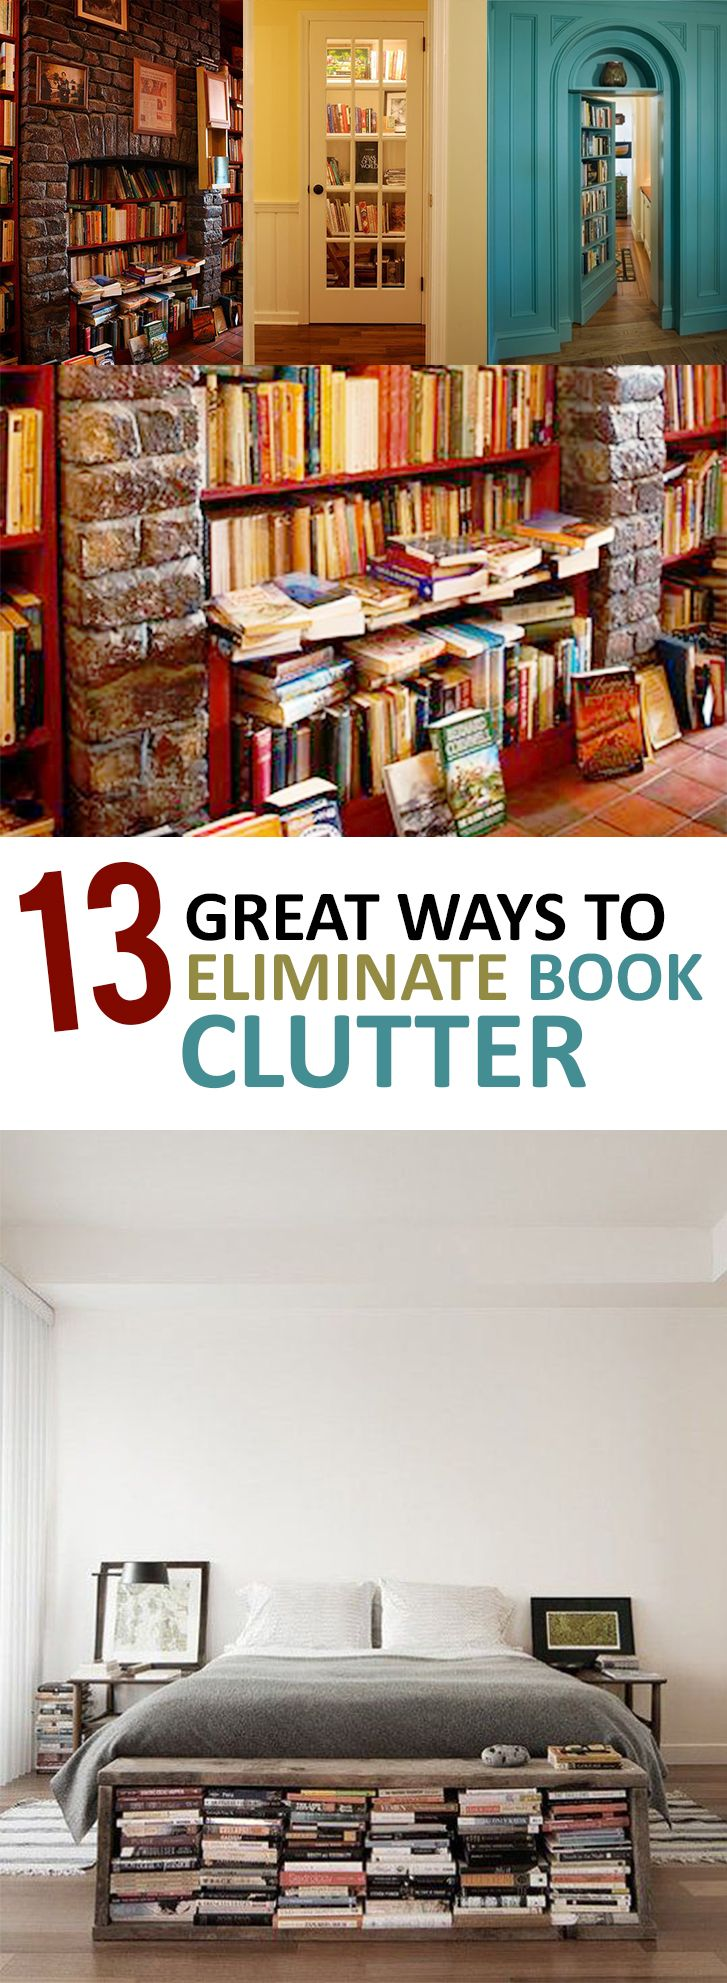 31229 best images about organizing ideas on pinterest for Do it yourself home organization